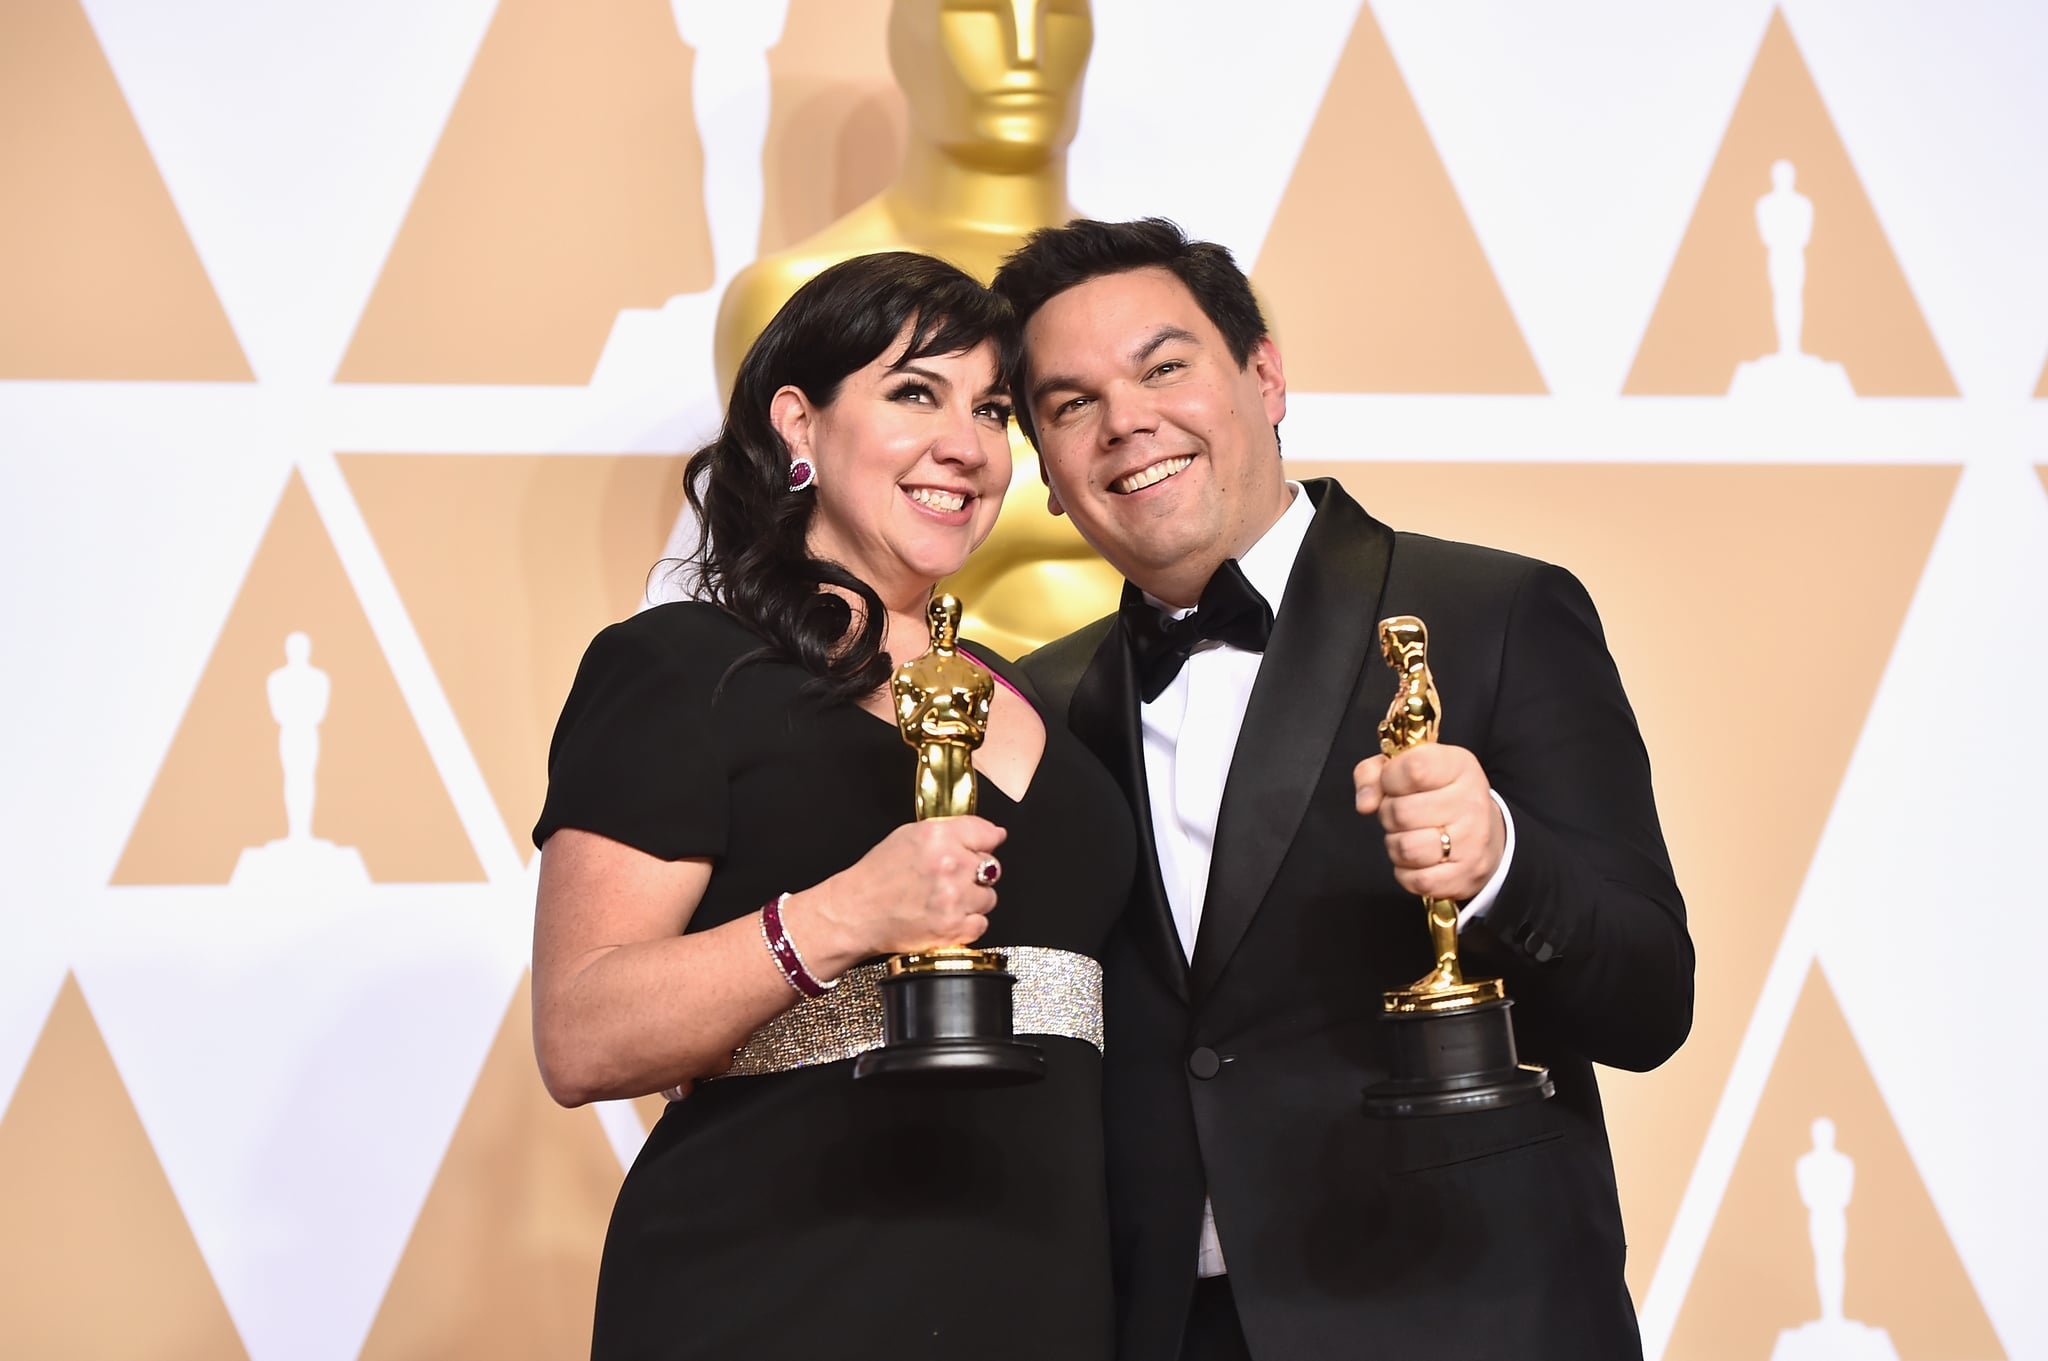 Robert Lopez becomes first double EGOT victor with Oscar for 'Coco'